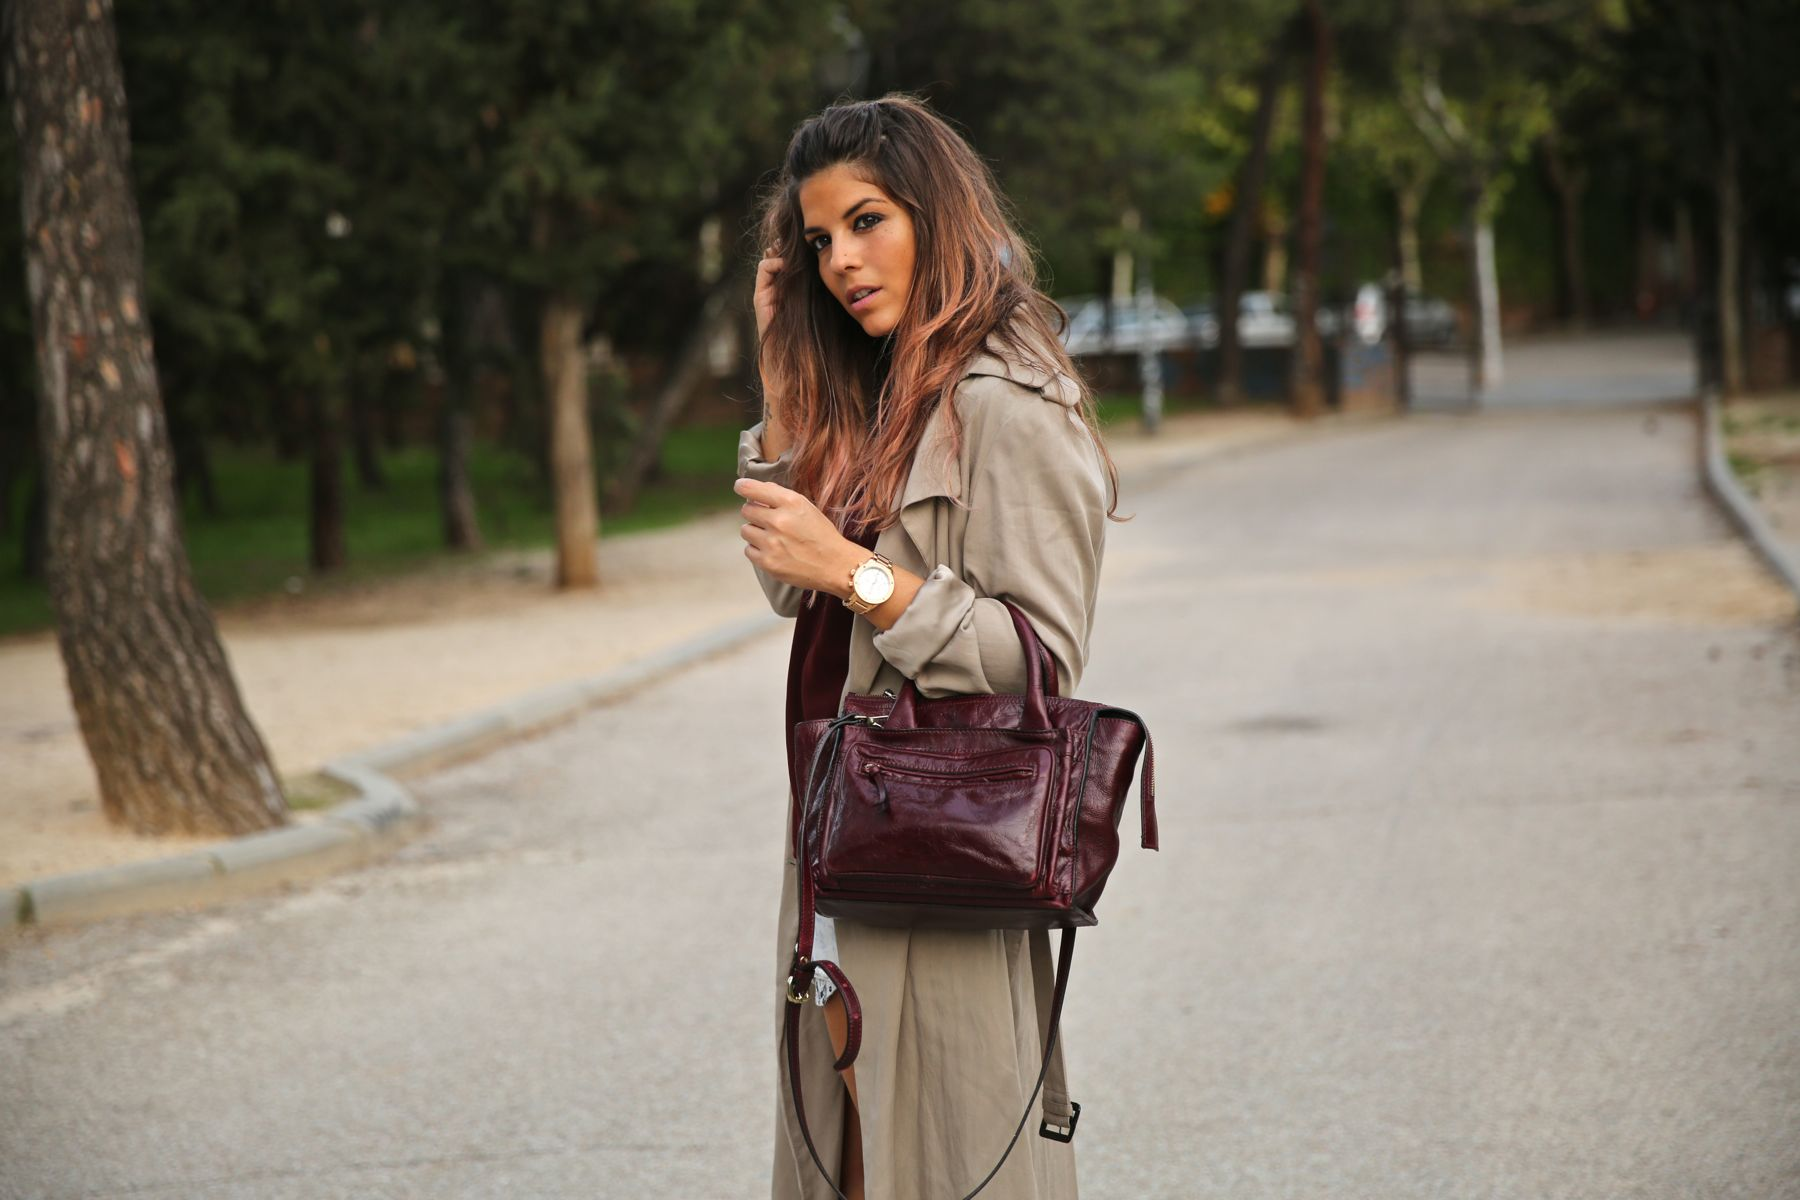 trendy_taste-look-outfit-street_style-ootd-blog-blogger-fashion_spain-moda_españa-boho-hippie-gabardina-botines_camperos-booties-gabardina-raincoat-burgundy_bag-zara-5